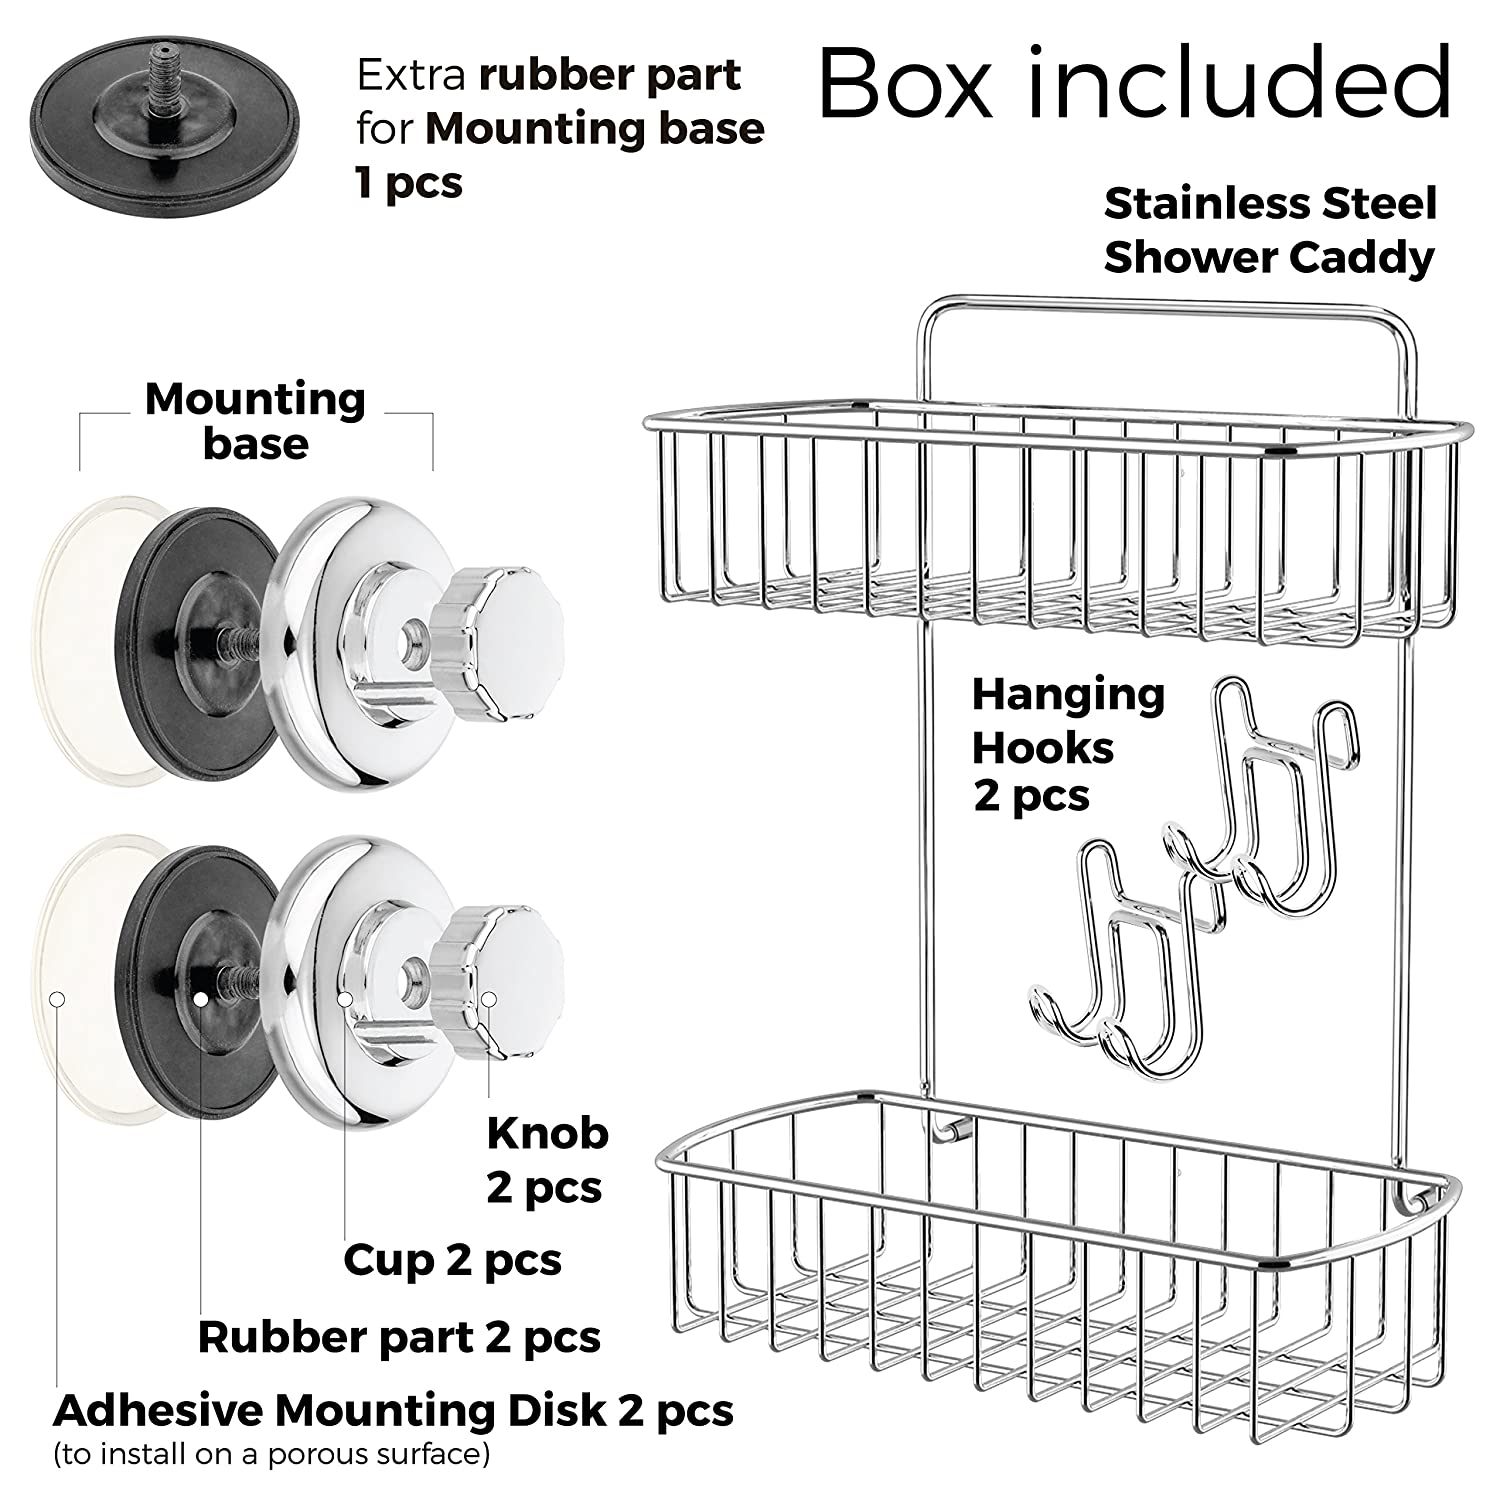 Amazon.com: HASKO accessories Shower Caddy with Suction Cup - 304 ...